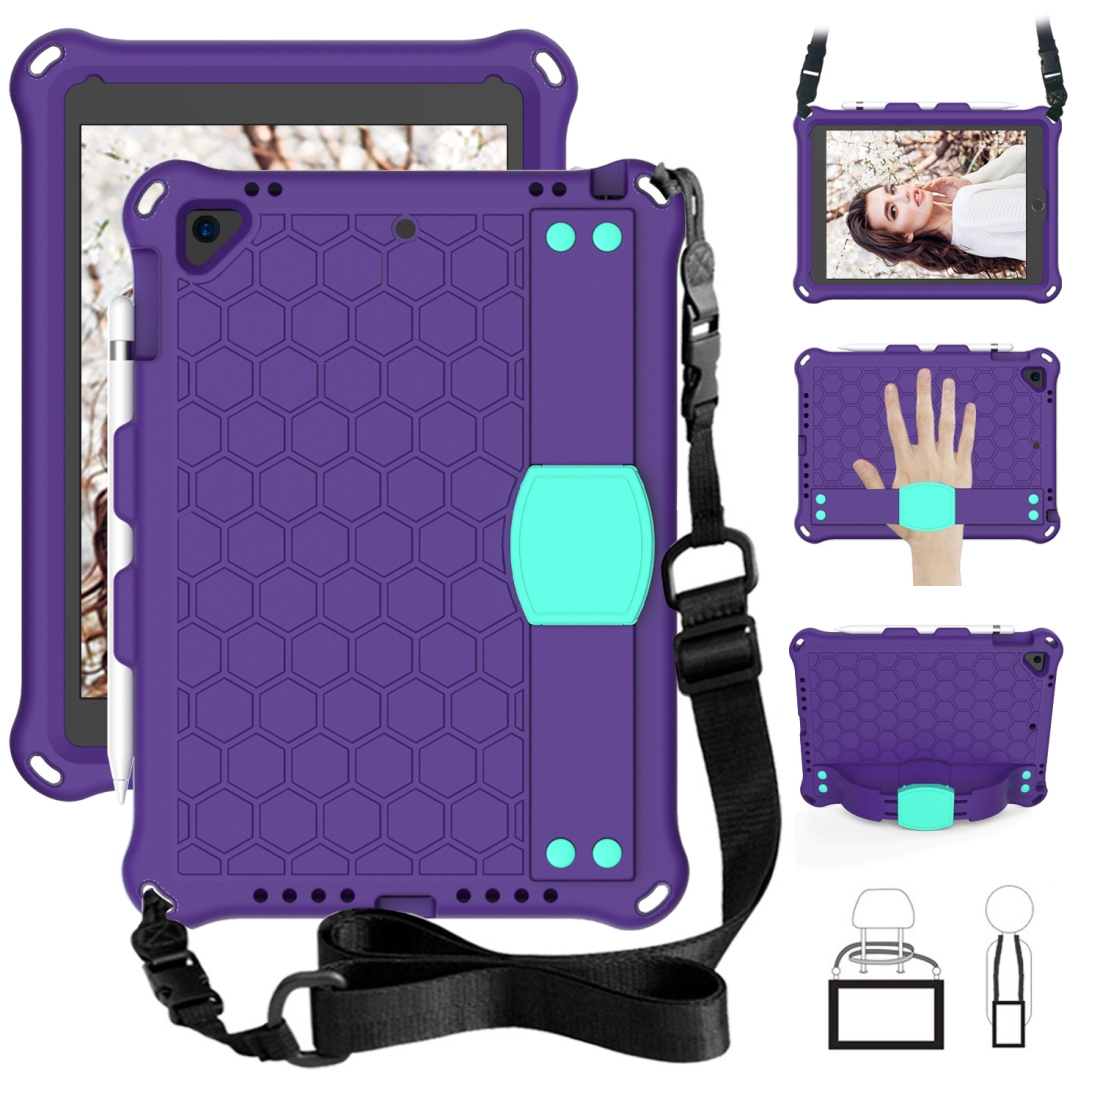 iPad 9.7 Case 2017/2018 Honeycomb Design Four Corner Protective Shell With Straps (Purple/Mint)